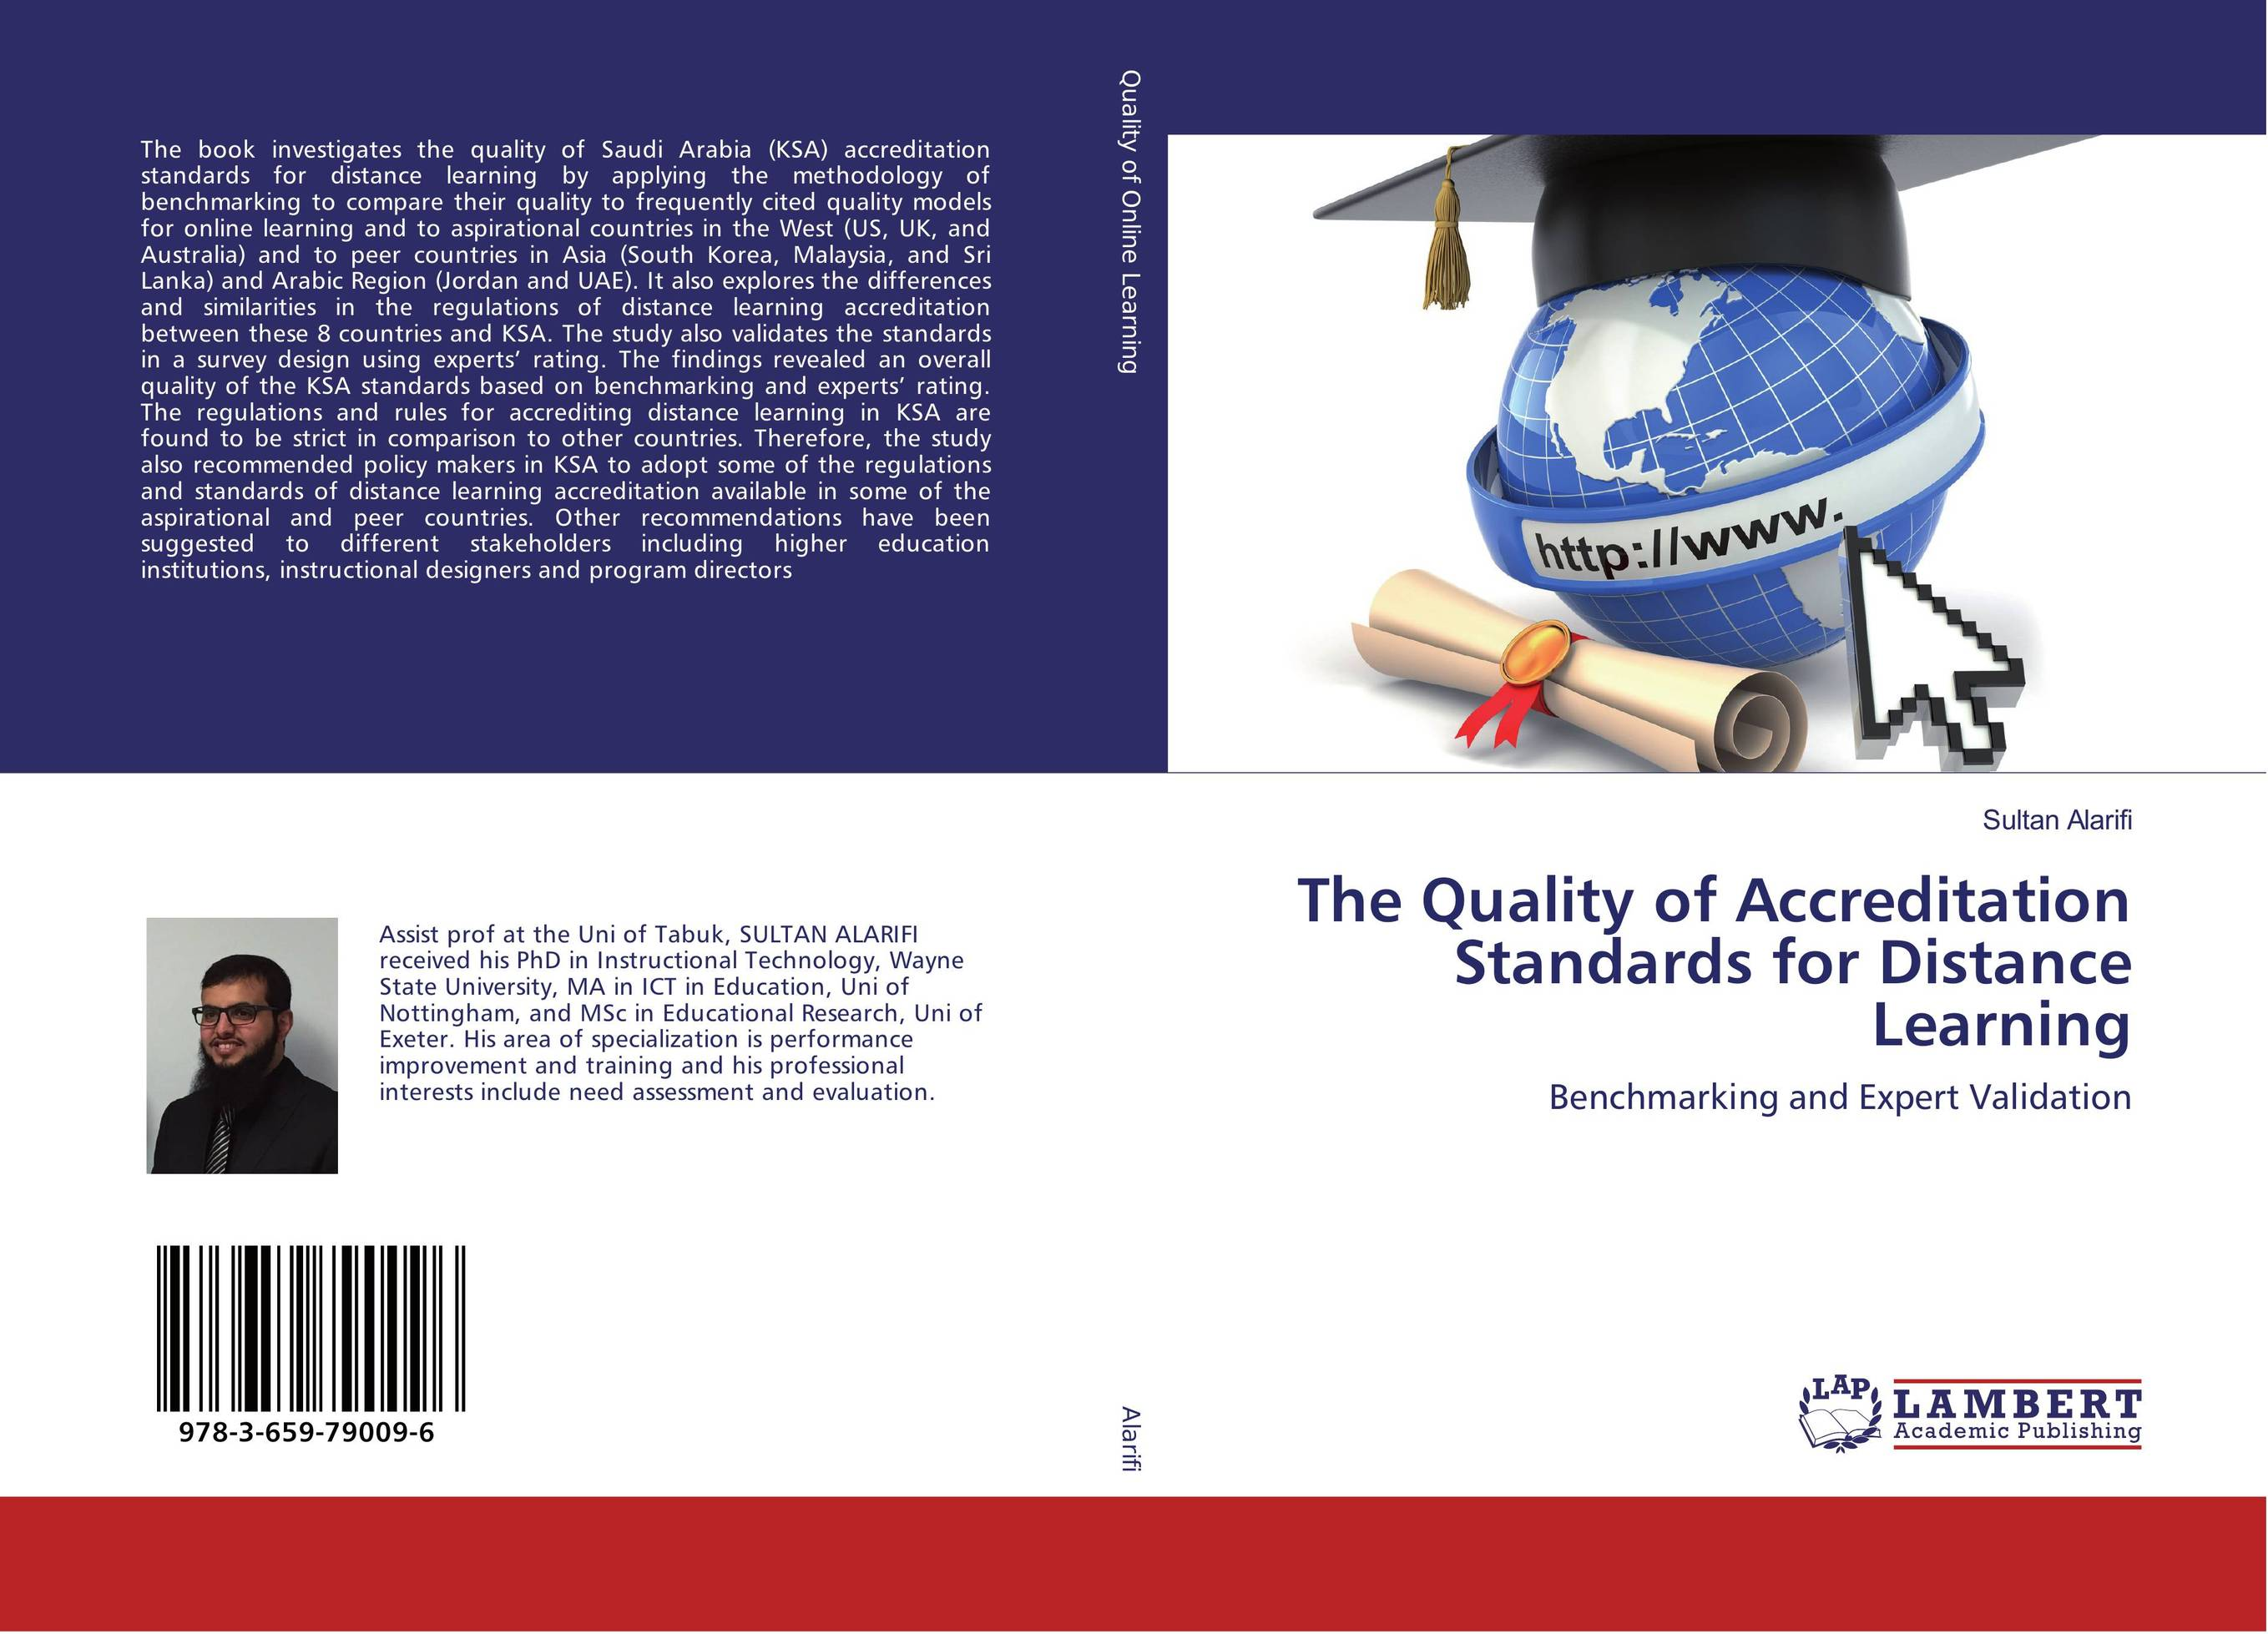 The Quality of Accreditation Standards for Distance Learning